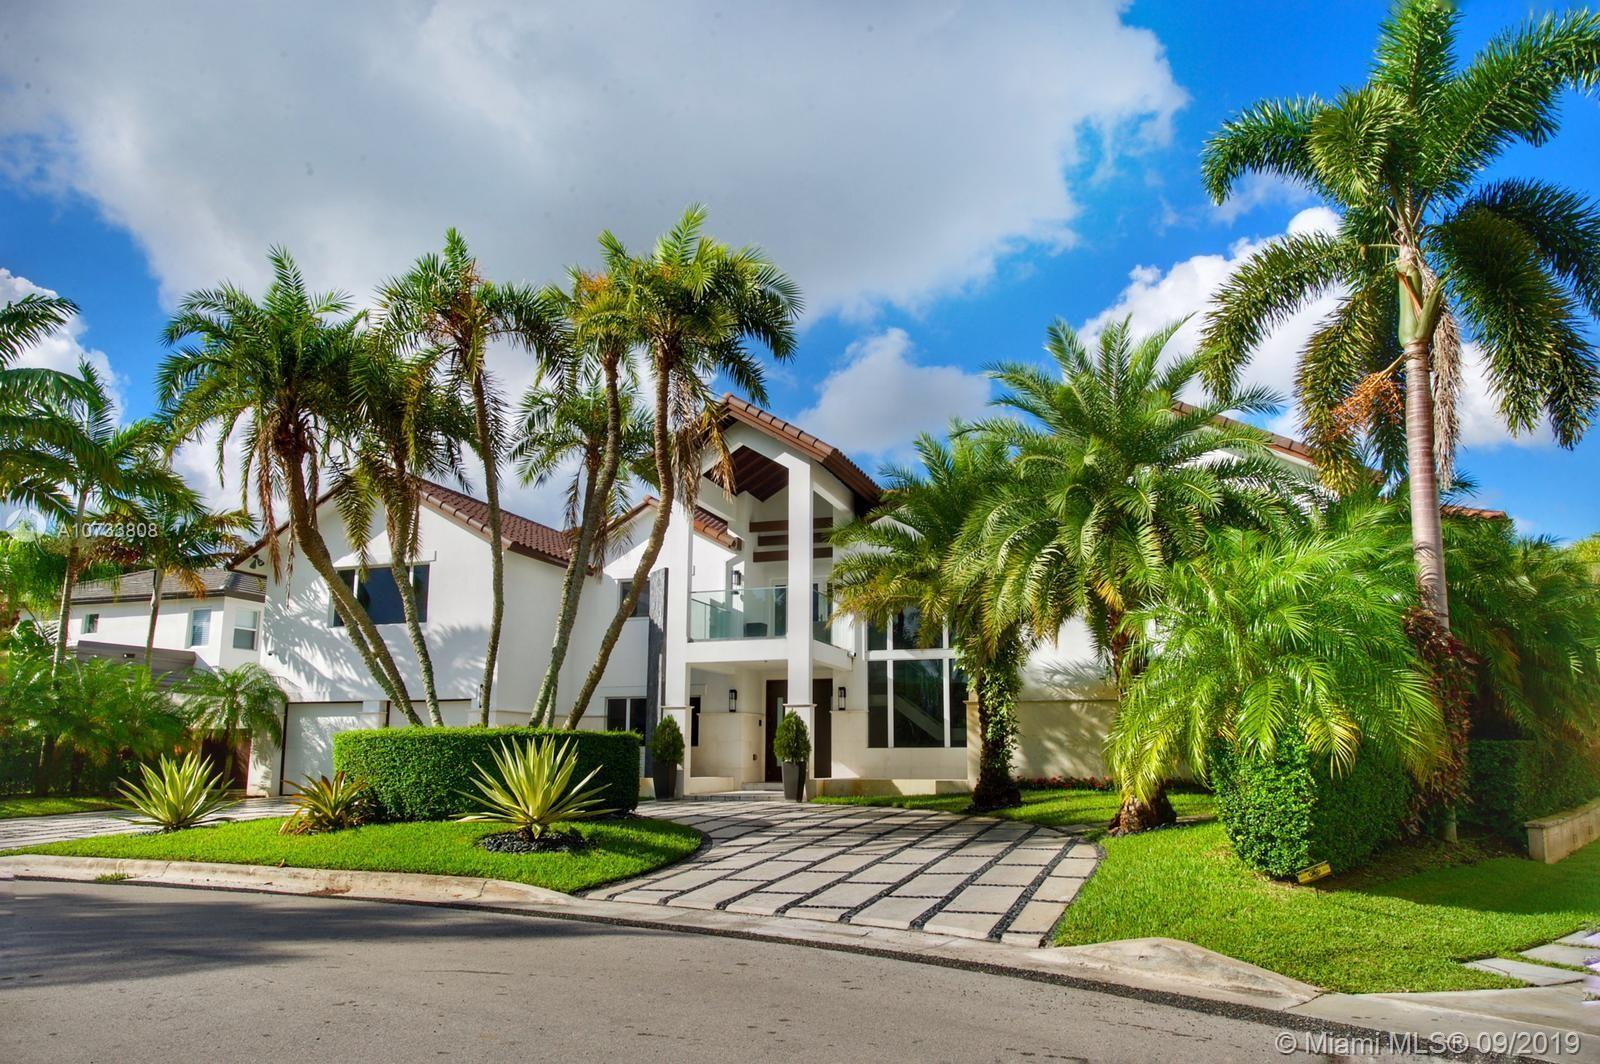 5274 NW 94th Doral Pl, Doral, Florida